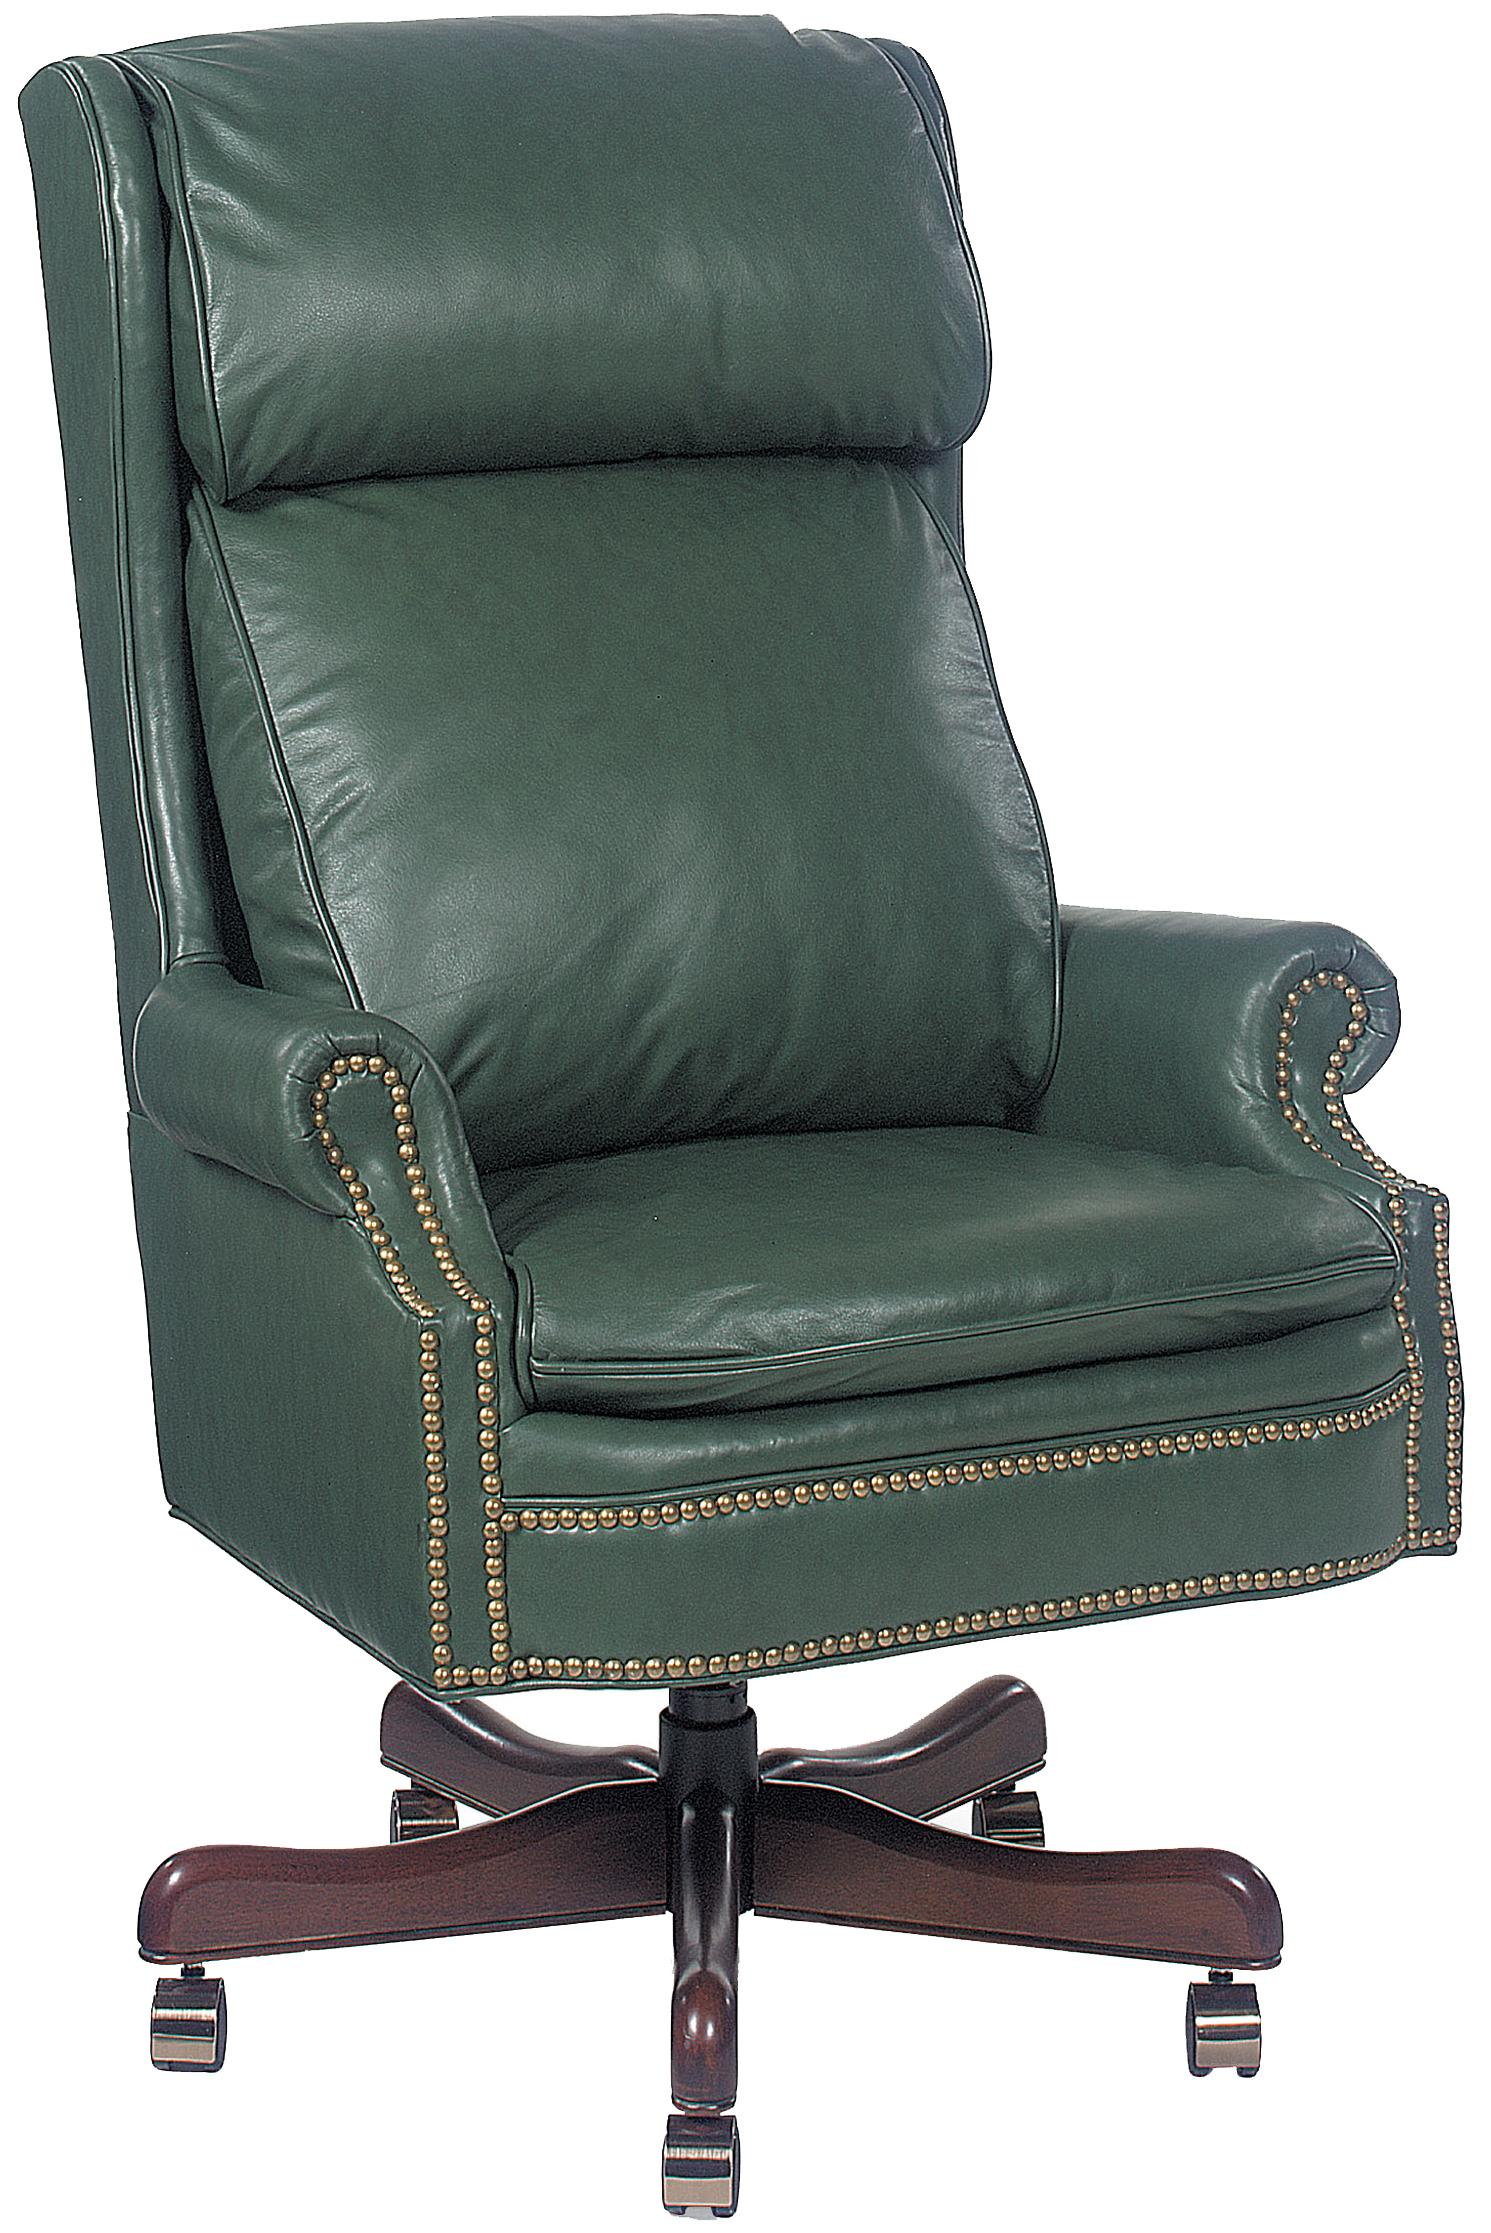 Office Furnishings Executive Swivel by Fairfield at Jacksonville Furniture Mart